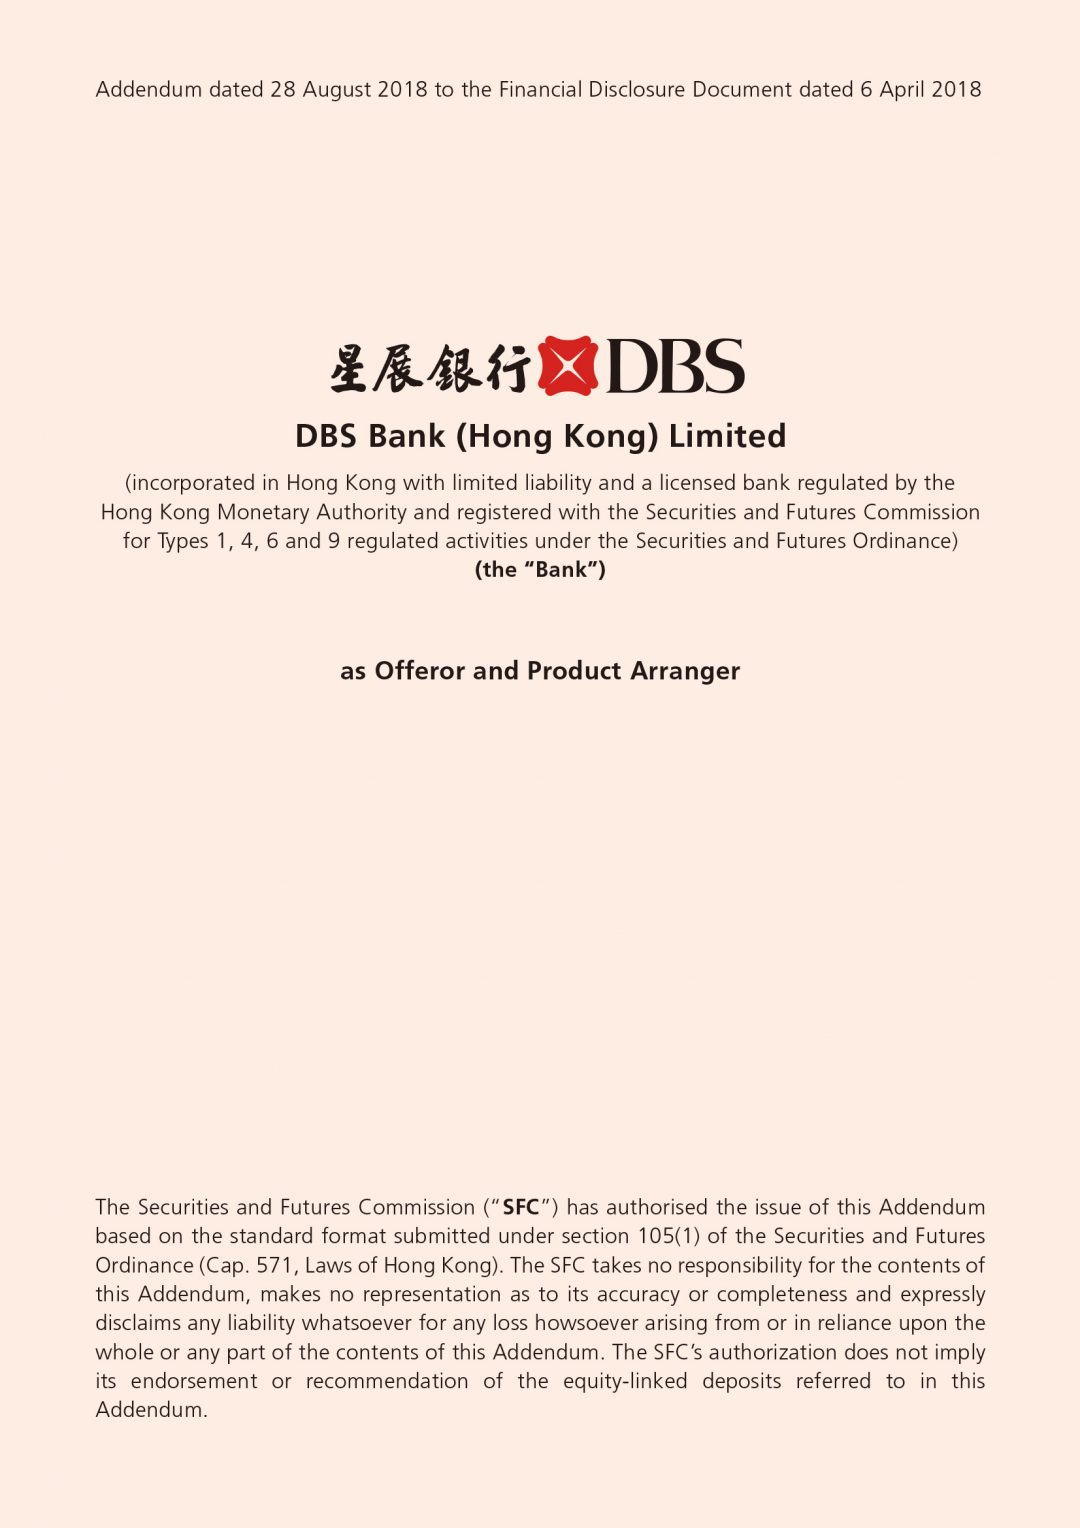 DBS Bank (Hong Kong) Limited – Addendum to the Financial Disclosure Document